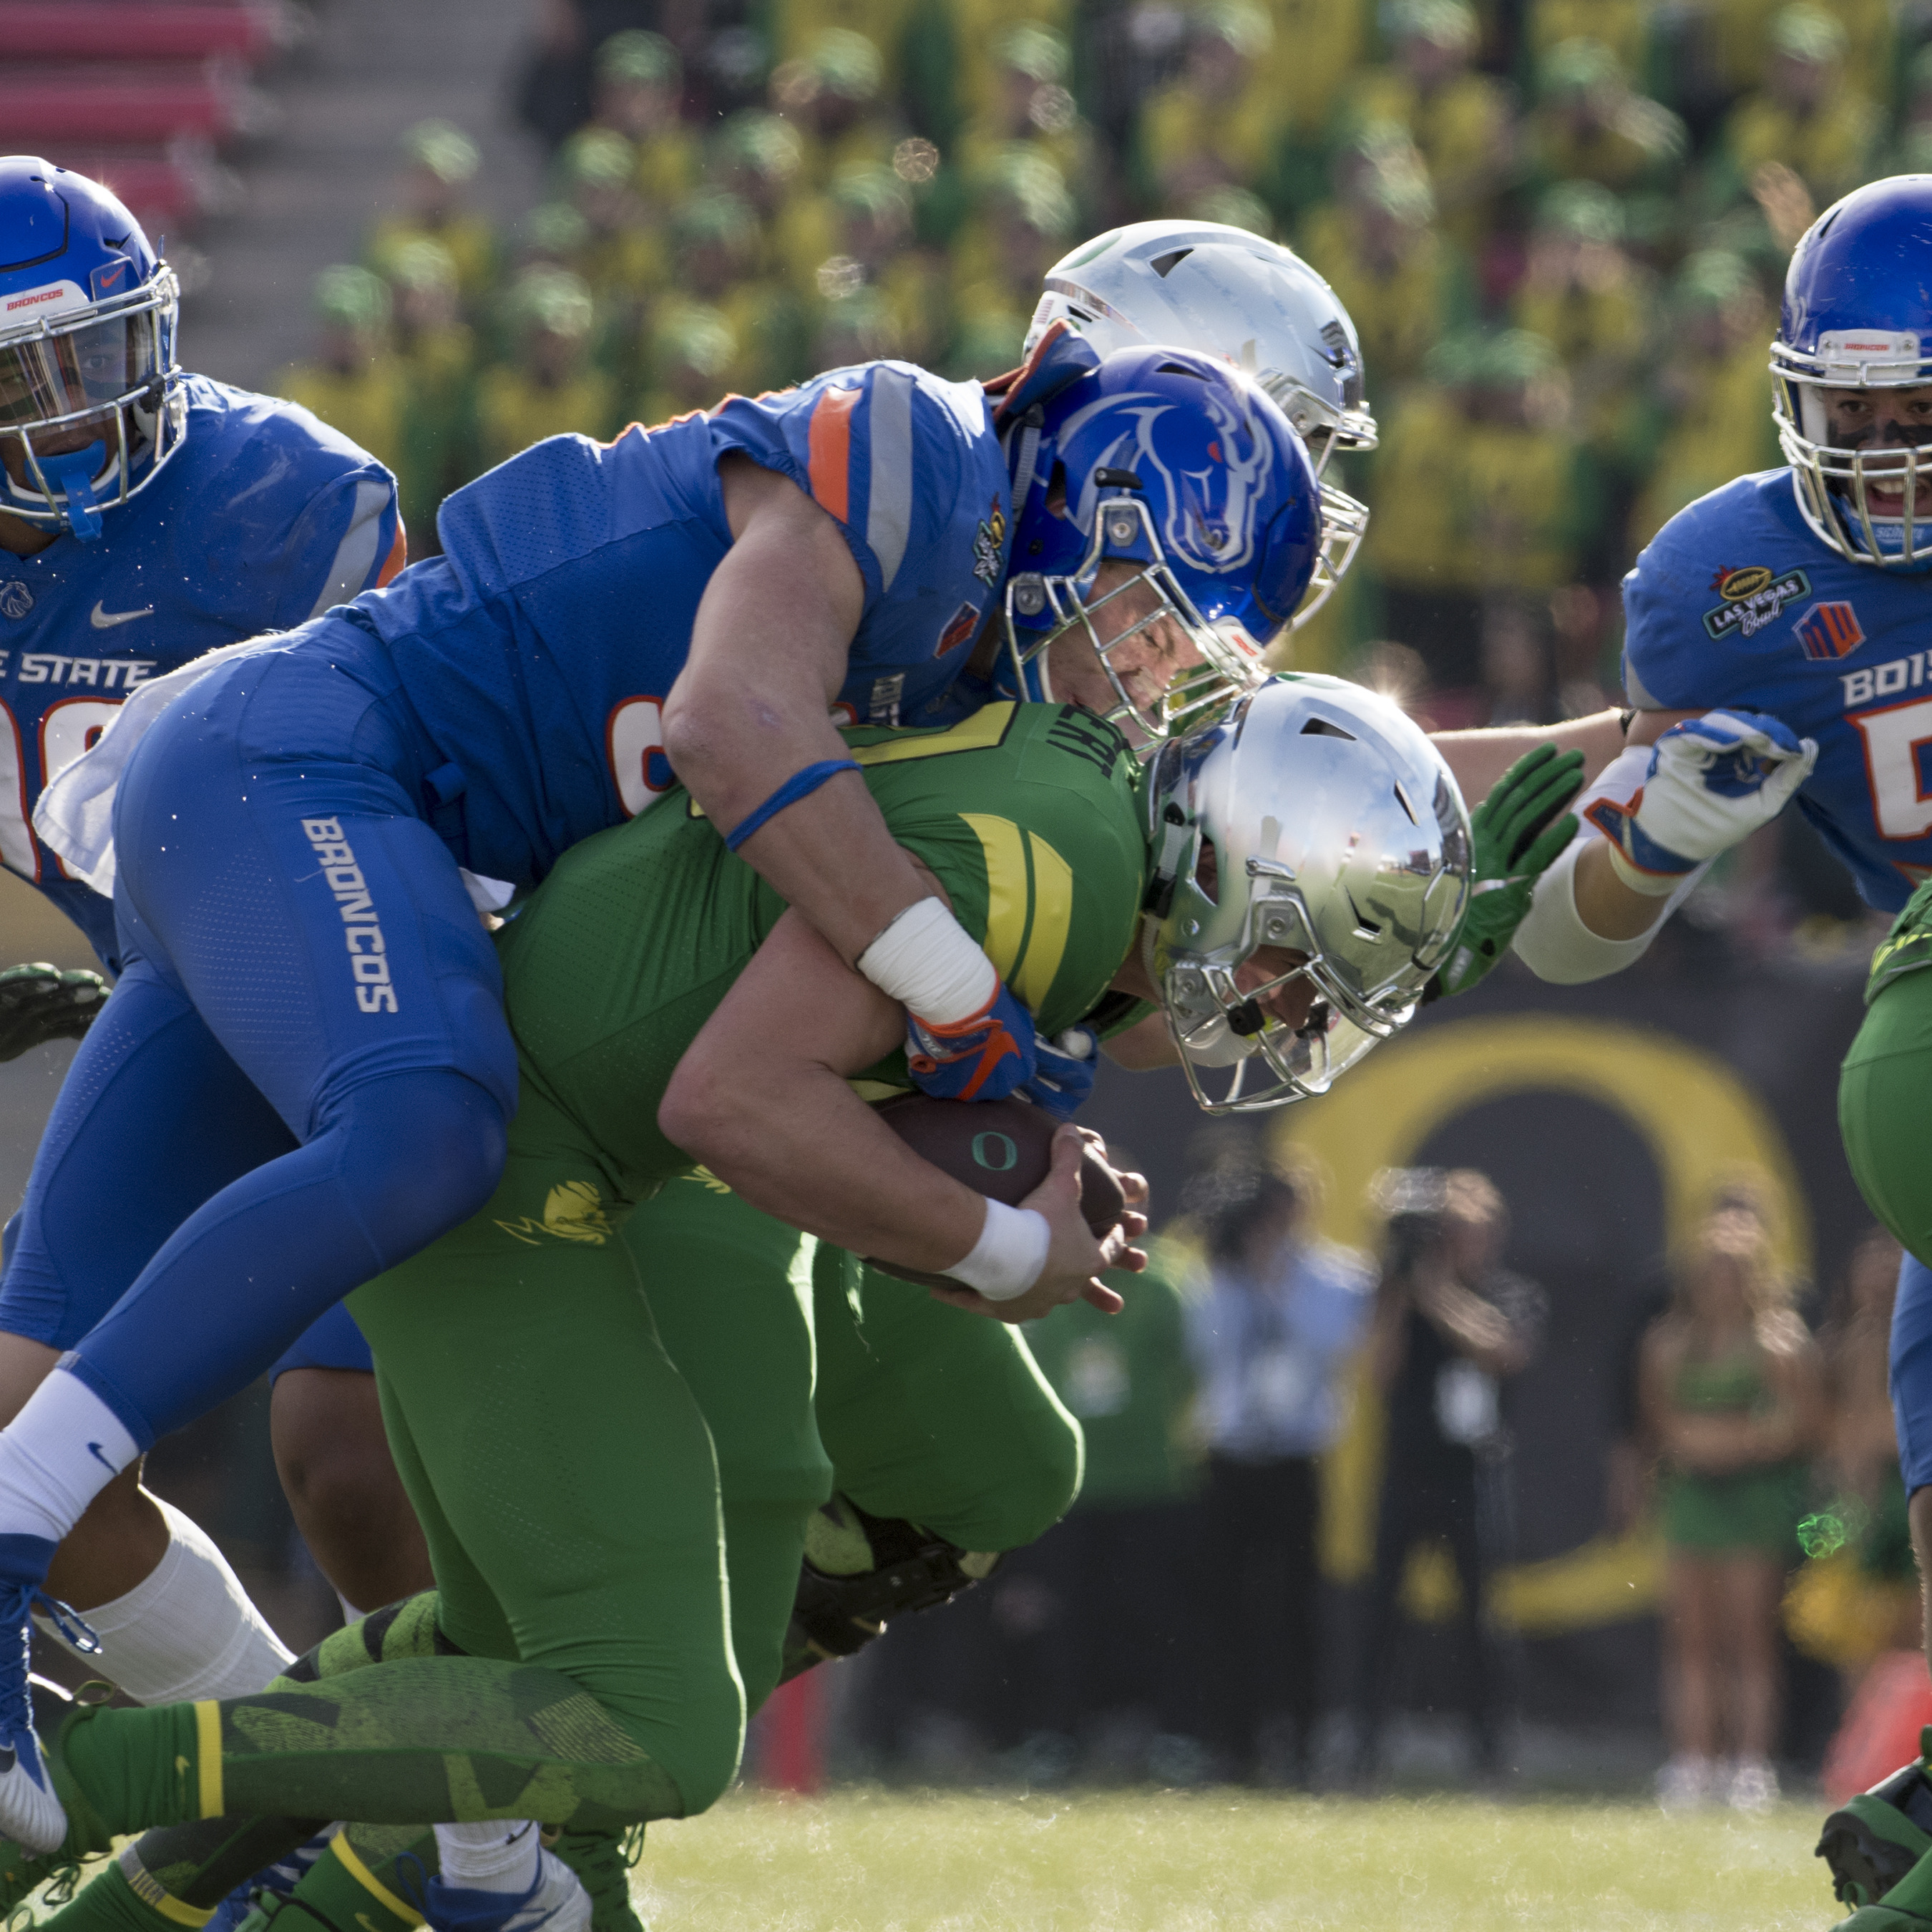 Boise state football vs oregon las vegas bowl 2017 john kelly photo